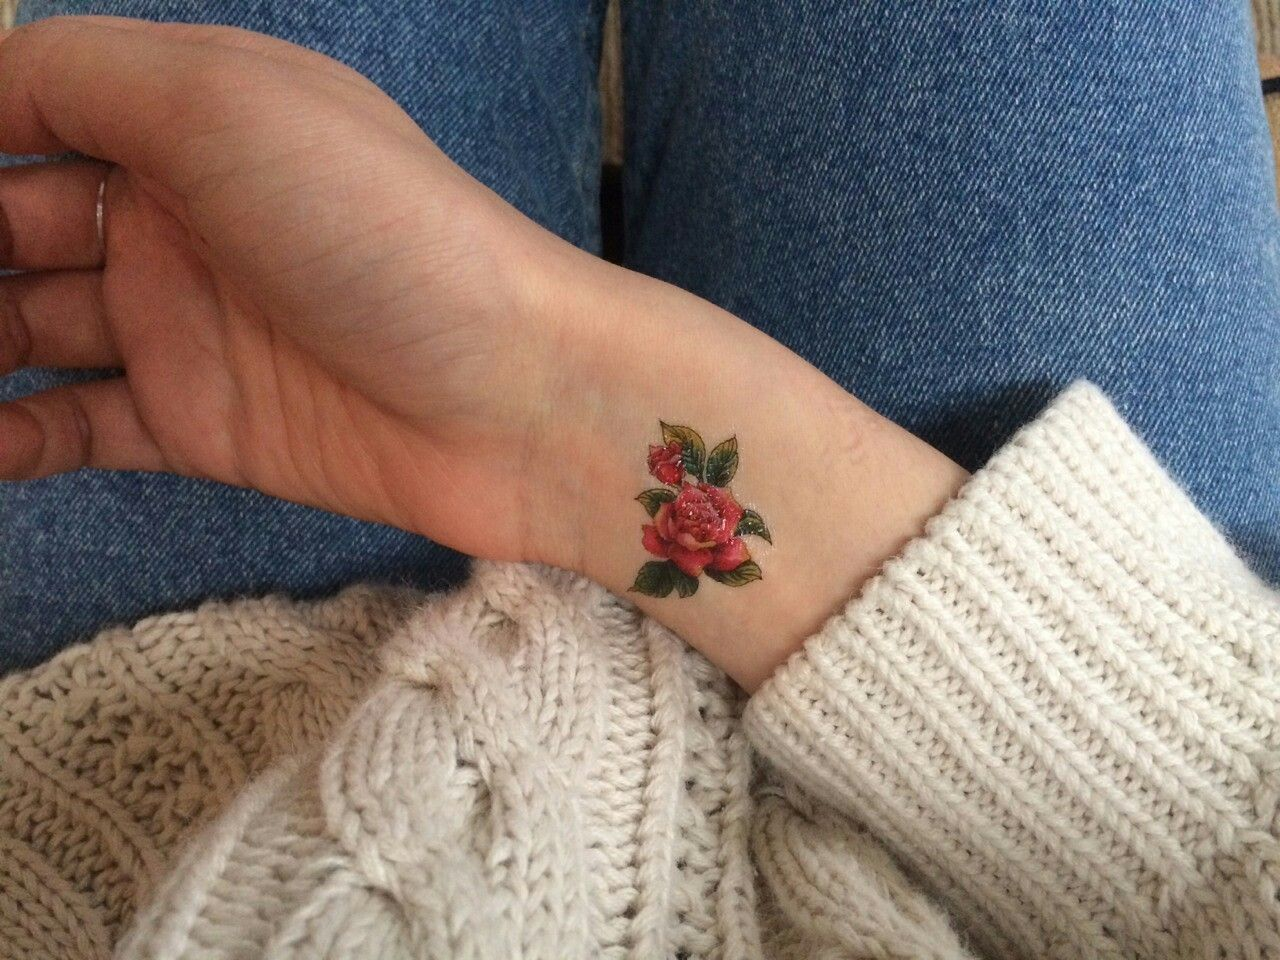 Cool tattoo designs for your hand pin by space cat on tattoos  pinterest  tattoo